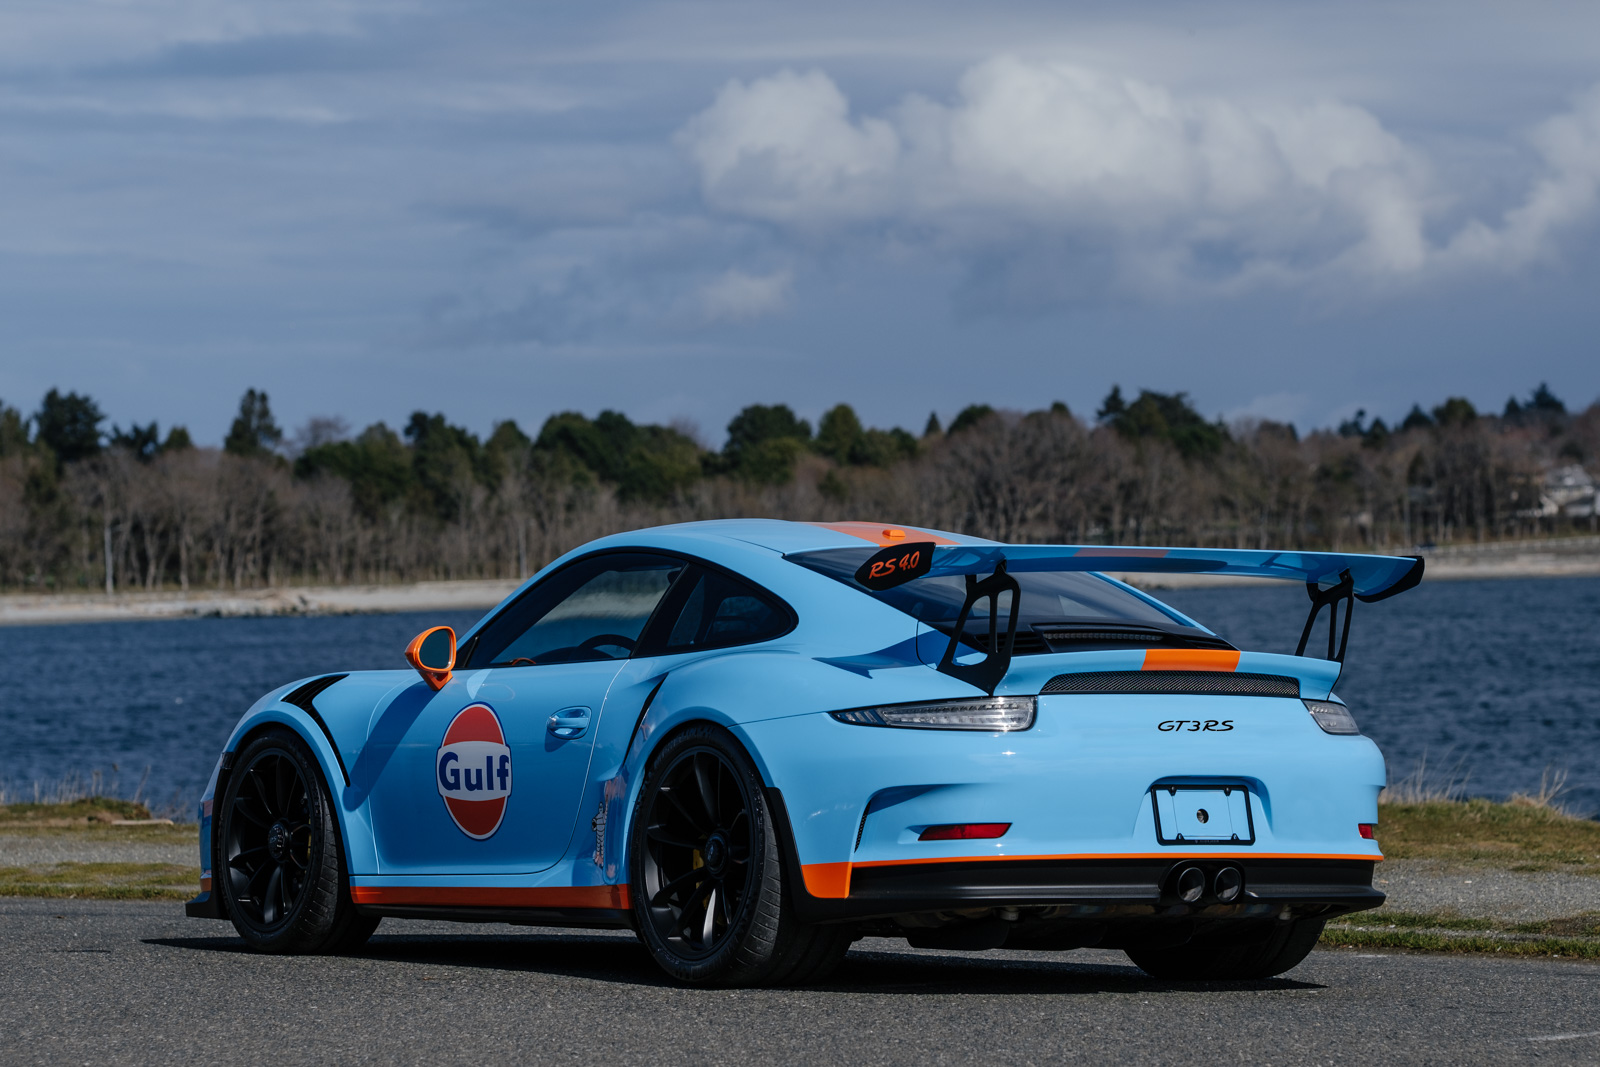 2016 porsche 911 gt3 rs gulf livery silver arrow cars ltd. Black Bedroom Furniture Sets. Home Design Ideas